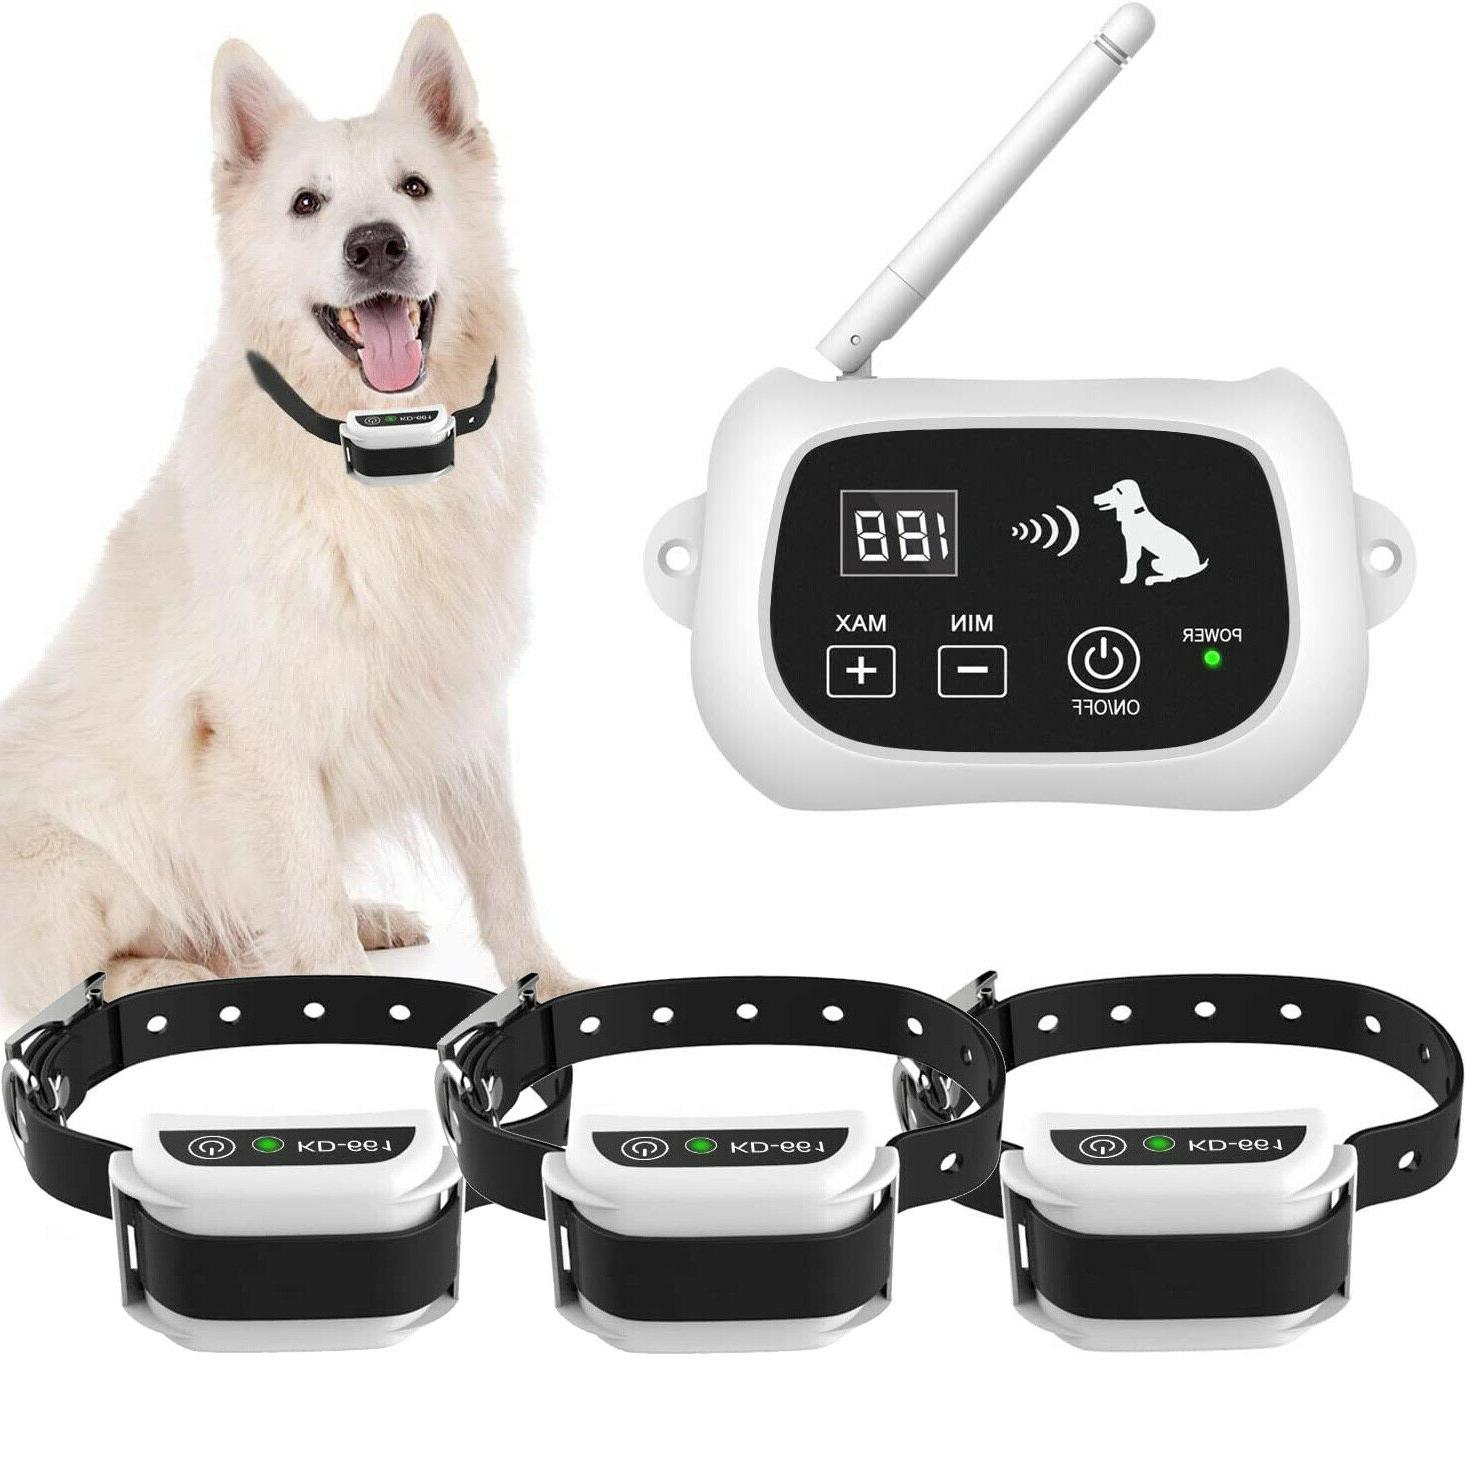 wireless dog fence pet containment system waterproof